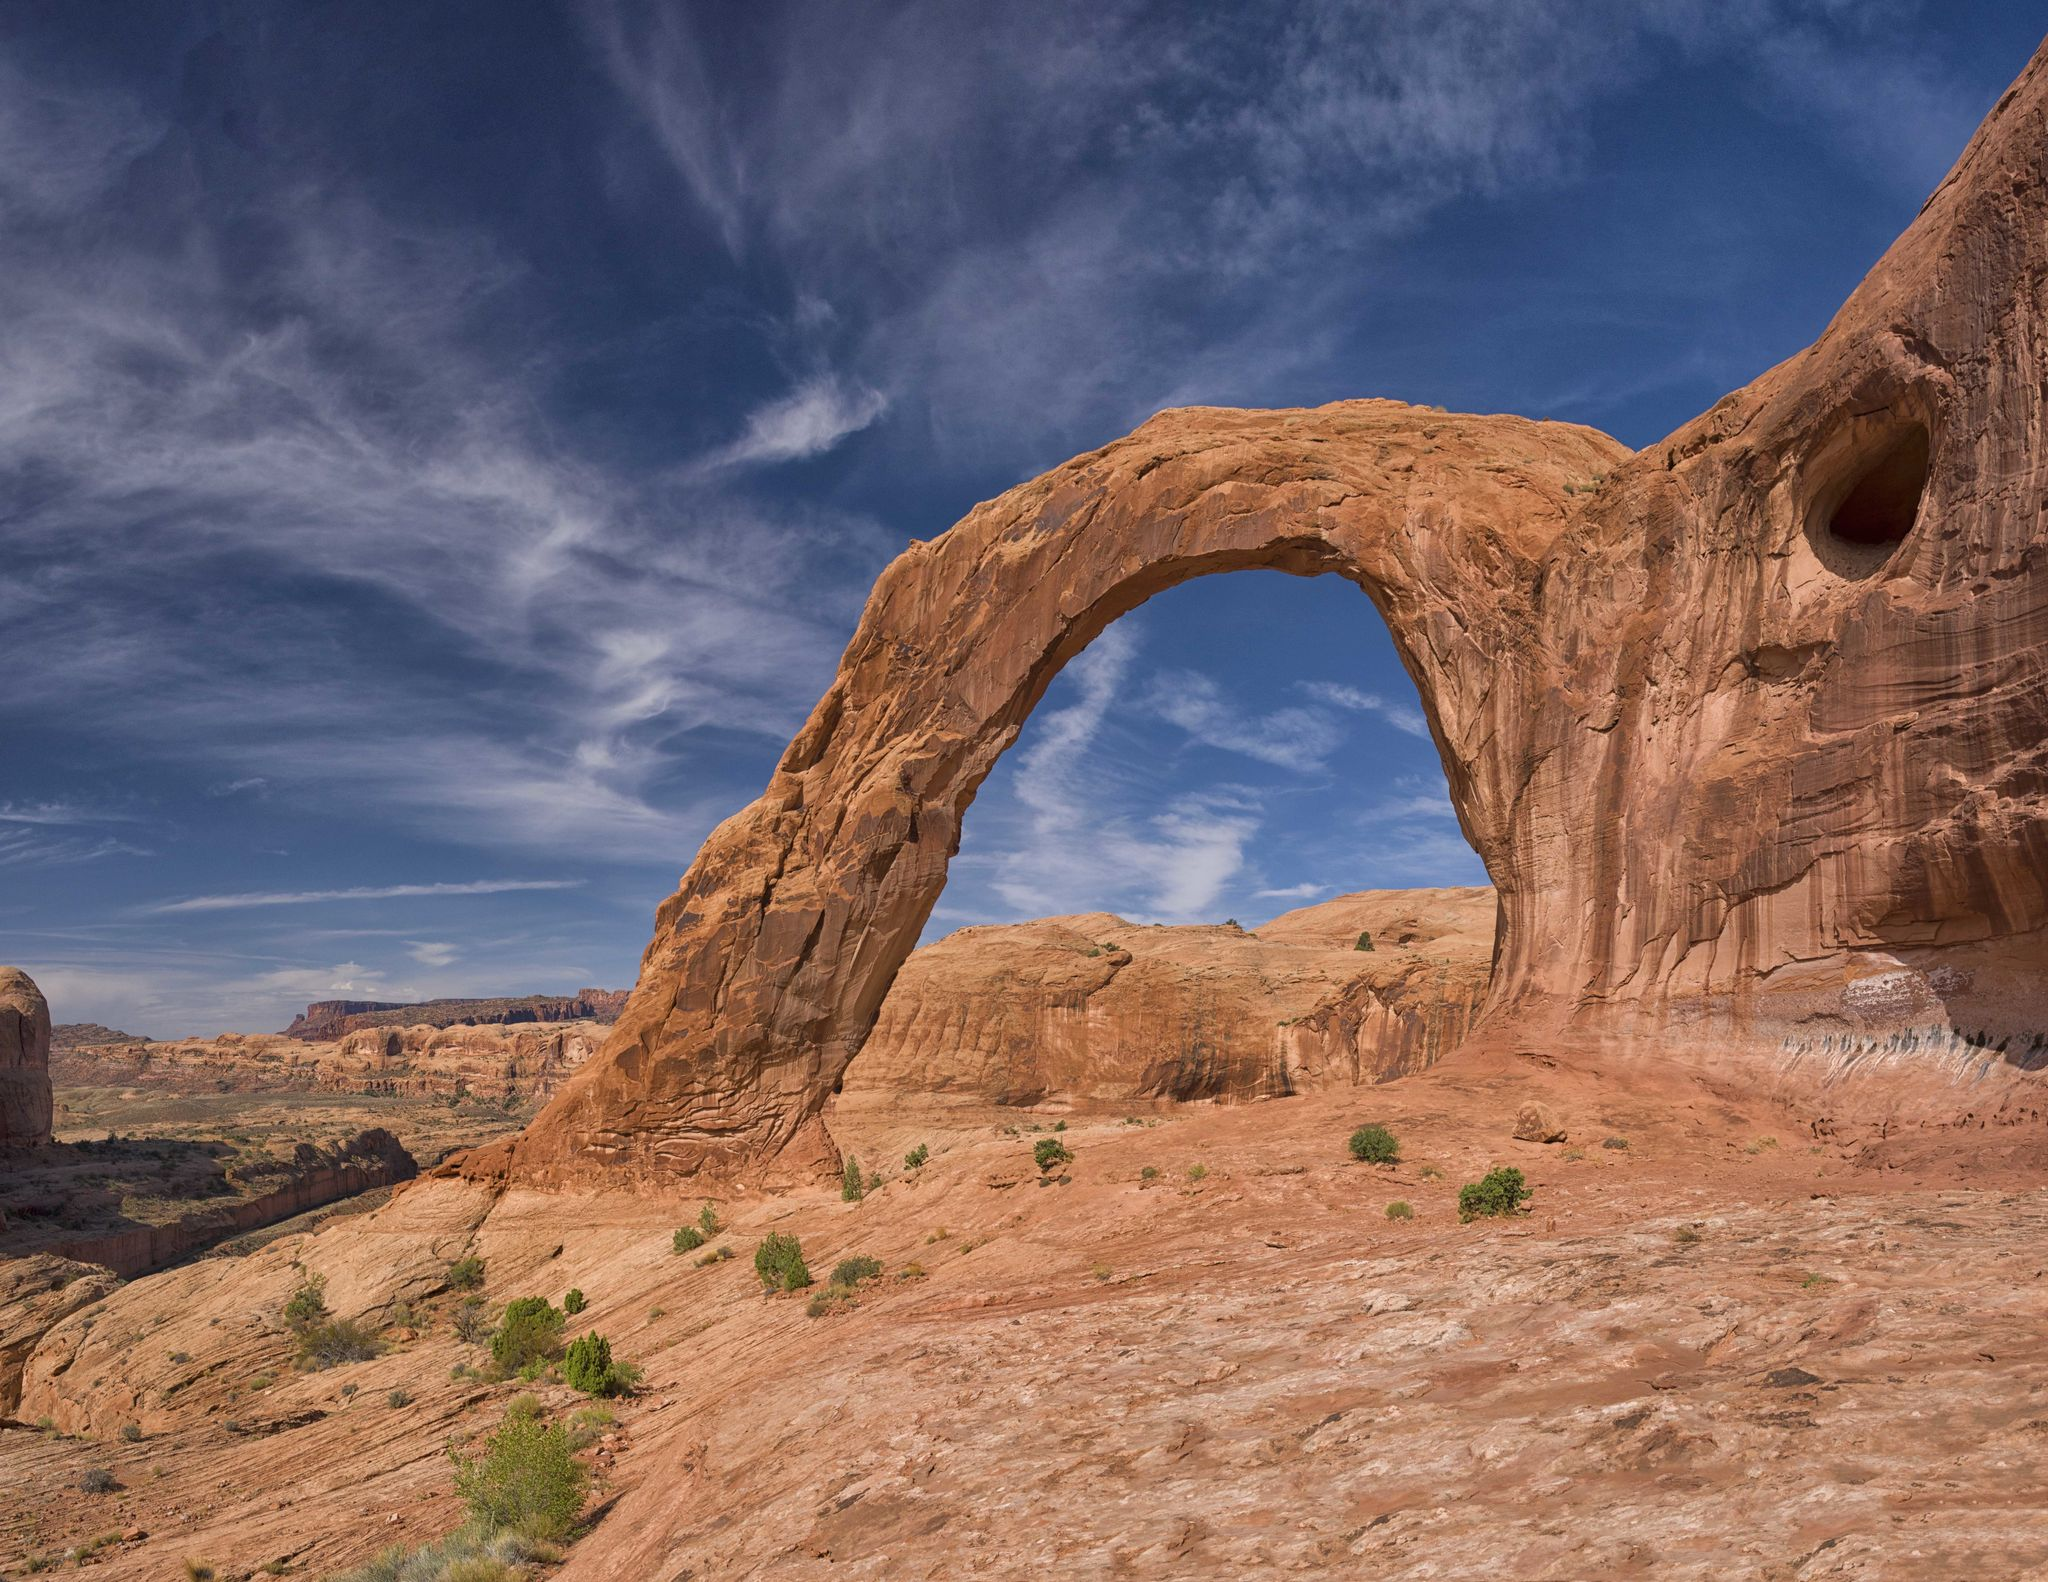 Corona And Bowtie Arch Trail Might Be One Of The Most Beautiful Short-And-Sweet Hikes To Take In Utah